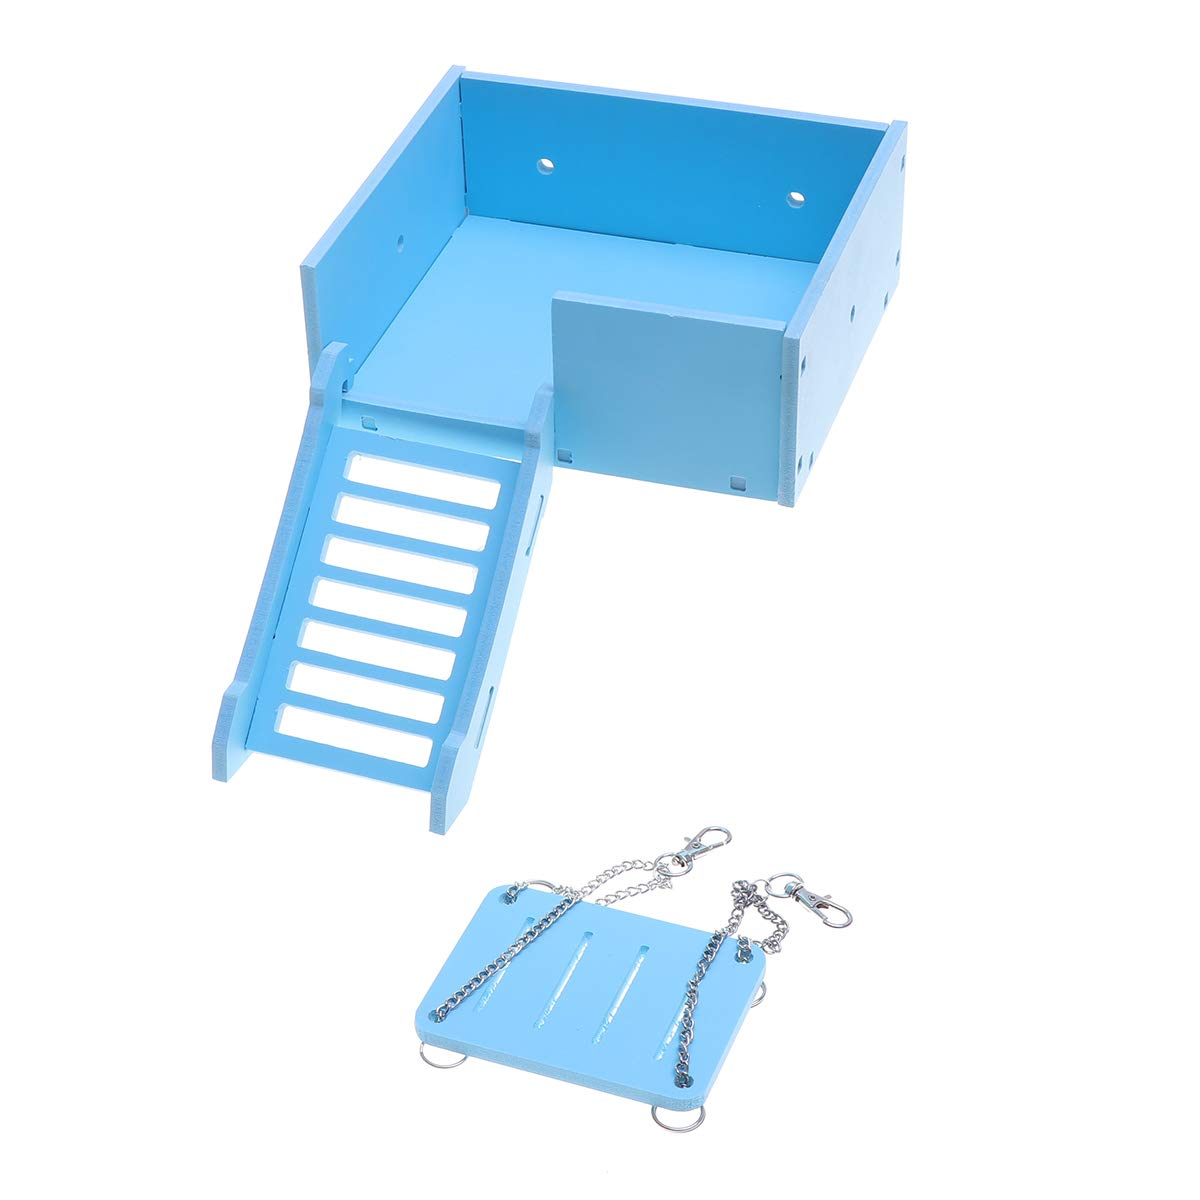 POPETPOP Hamster House Crawling Ladder Slide Swing Exercise Toys for Small Pets